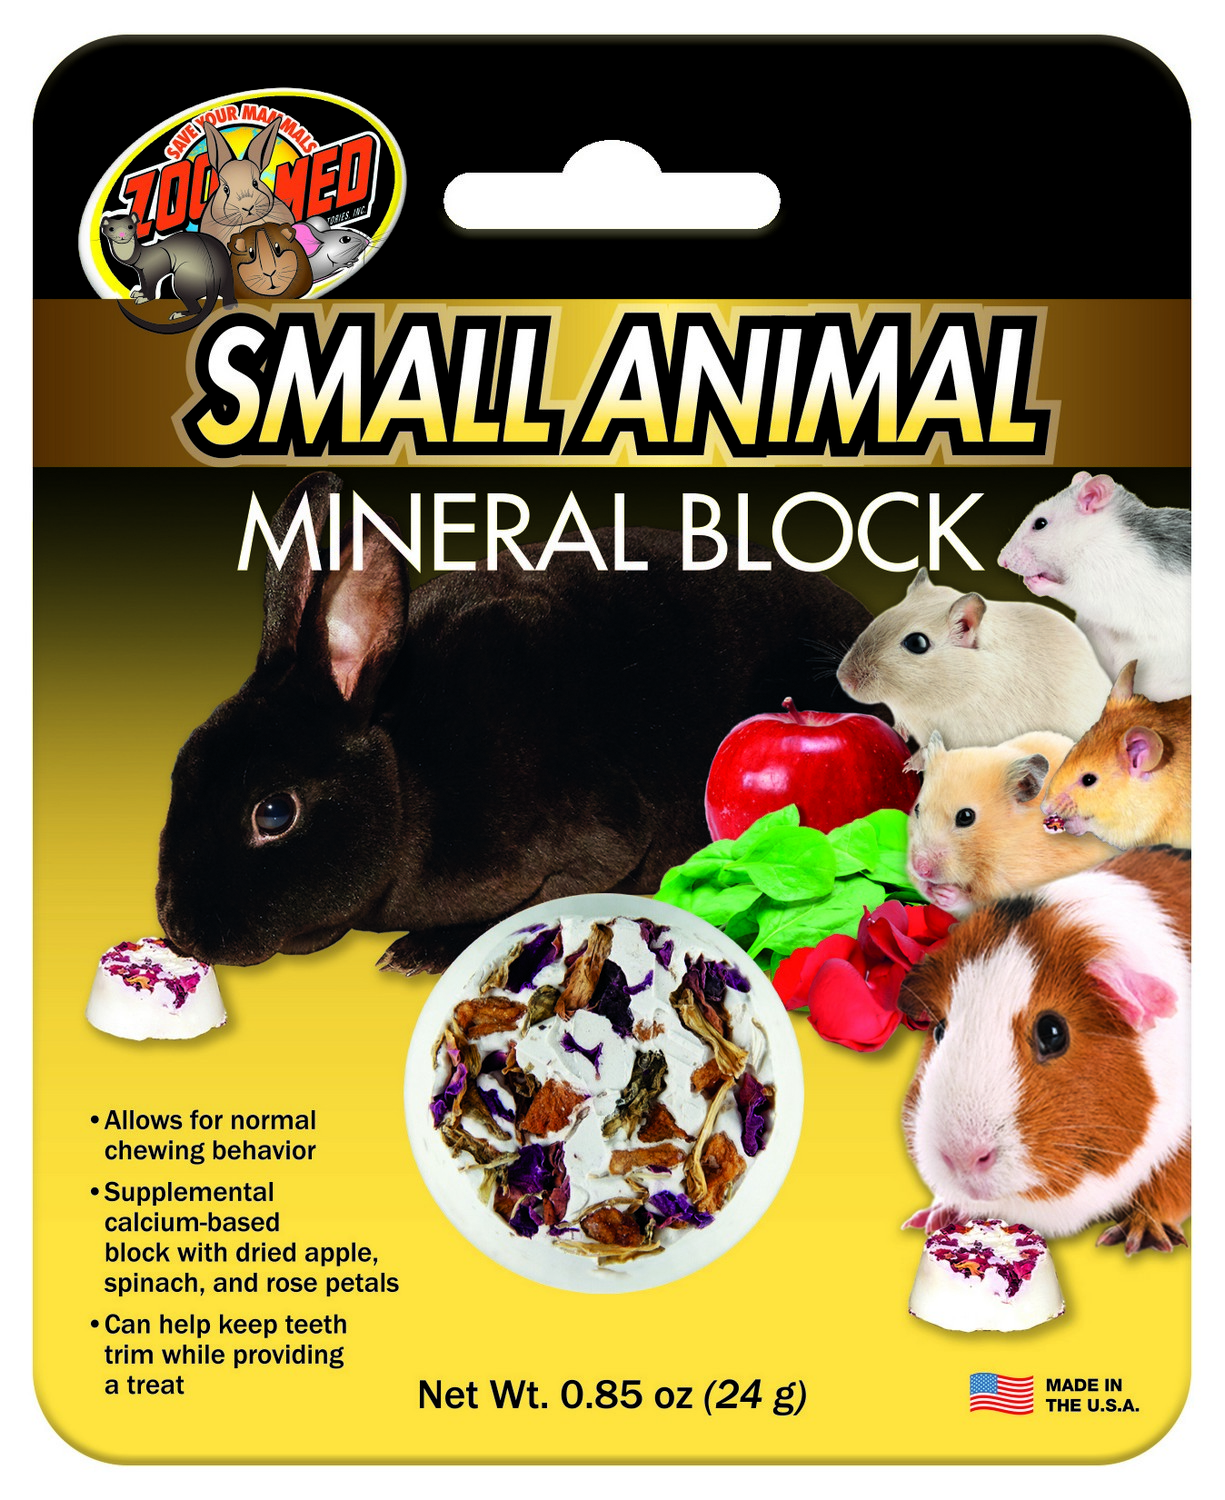 Small Animal Mineral Block Zoo Med Laboratories Inc